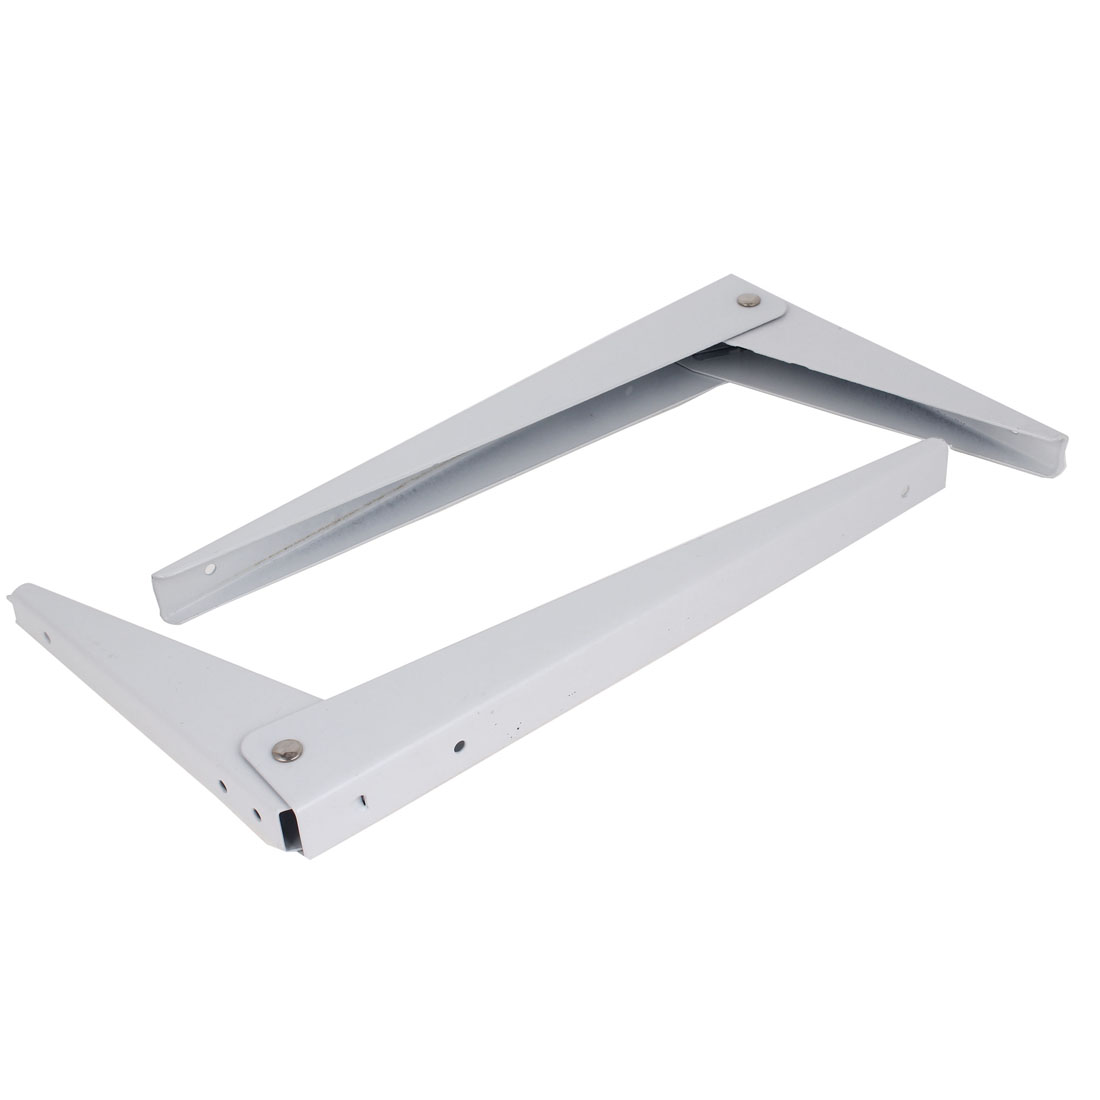 "2 Pcs 12"" x 7"" White Paint Folding Wall Mounting Holder Shelf Brackets 25mm Wide"